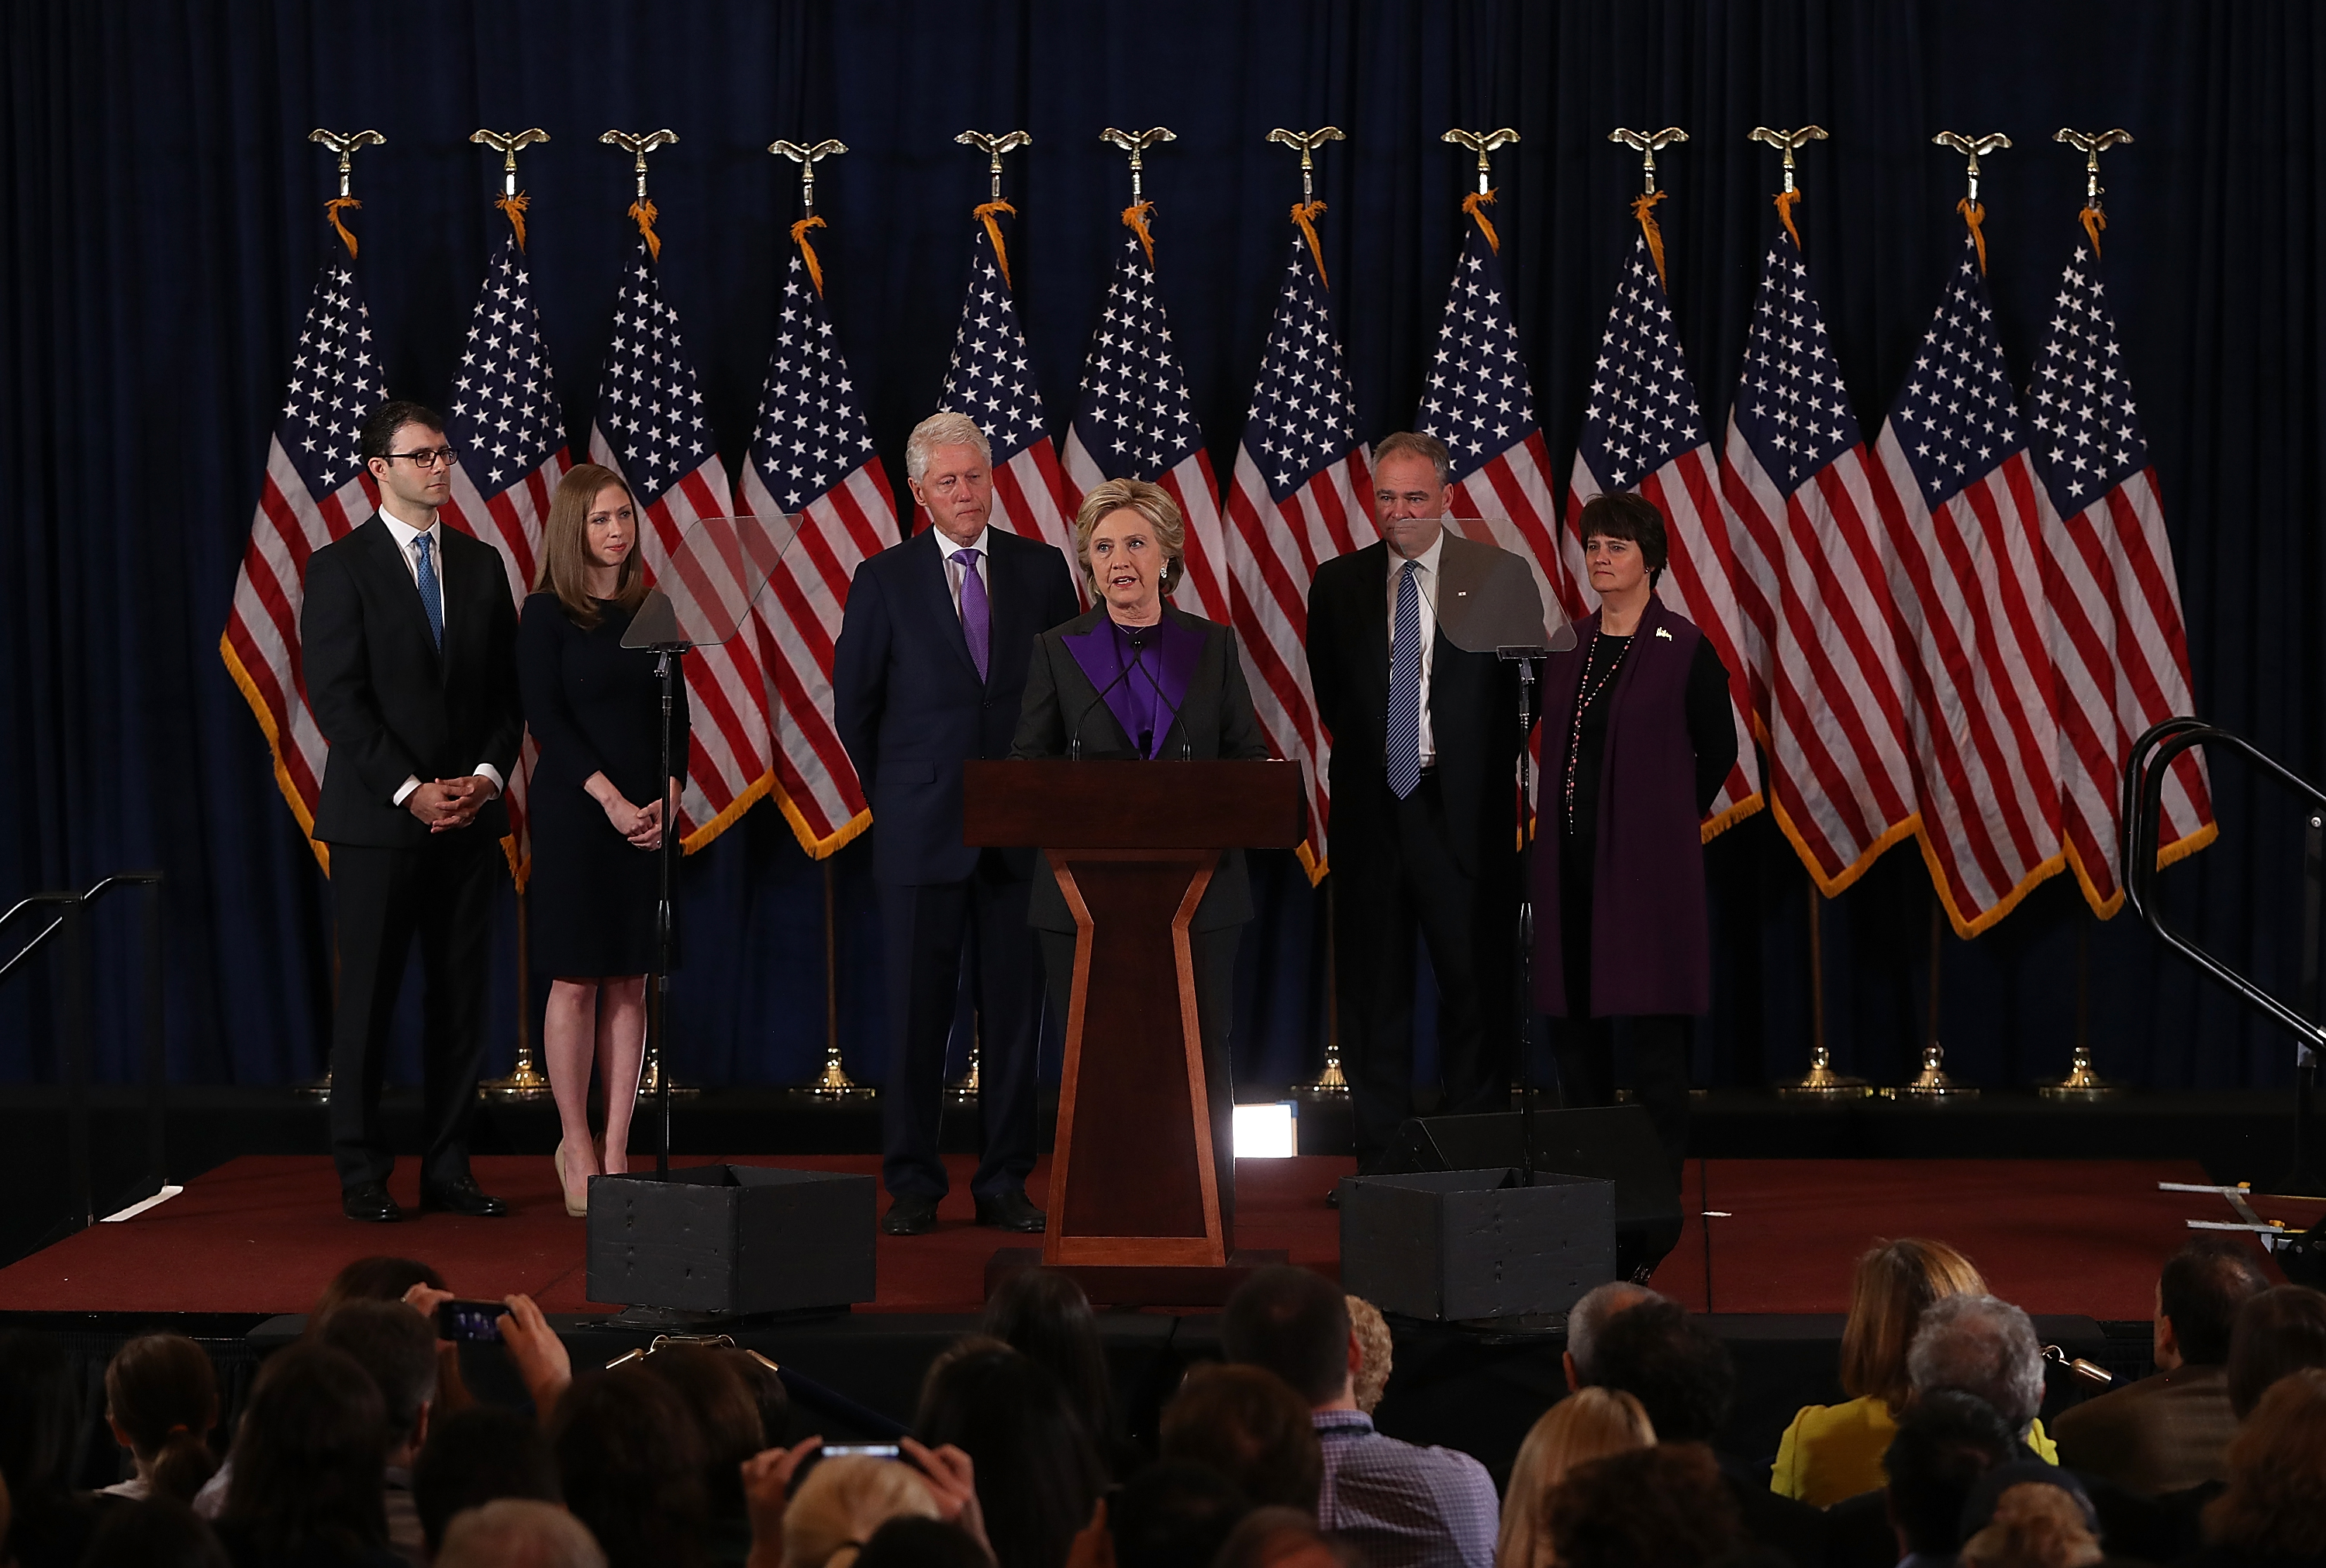 Former Secretary of State Hillary Clinton concedes the presidential election as Marc Mezvinsky, Chelsea Clinton, Bill Clinton, Tim Kaine and Anne Holton listen at the New Yorker Hotel on November 9, 2016 in New York City. (Photo by Justin Sullivan/Getty Images)